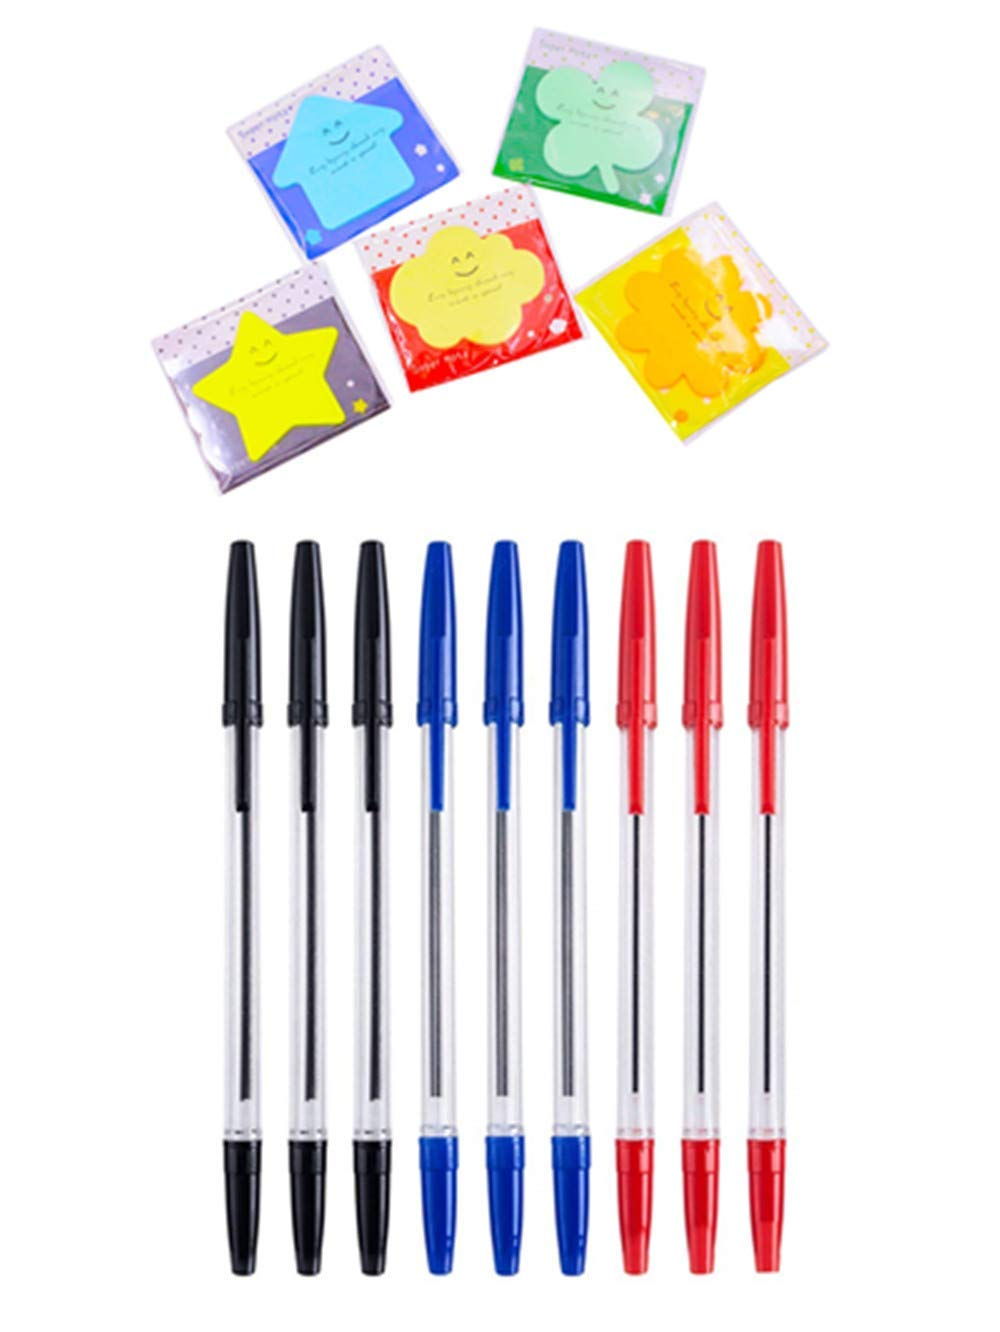 AEKAN 20 Pcs Ballpoint pens Plus 2 Pcs Sticky note, 0.7mm Contain 10 Pieces Black ink Pens,5 Pieces Red Ink Pens and 5 Pieces Blue Ink Pens for Home,Office (20 Pack)